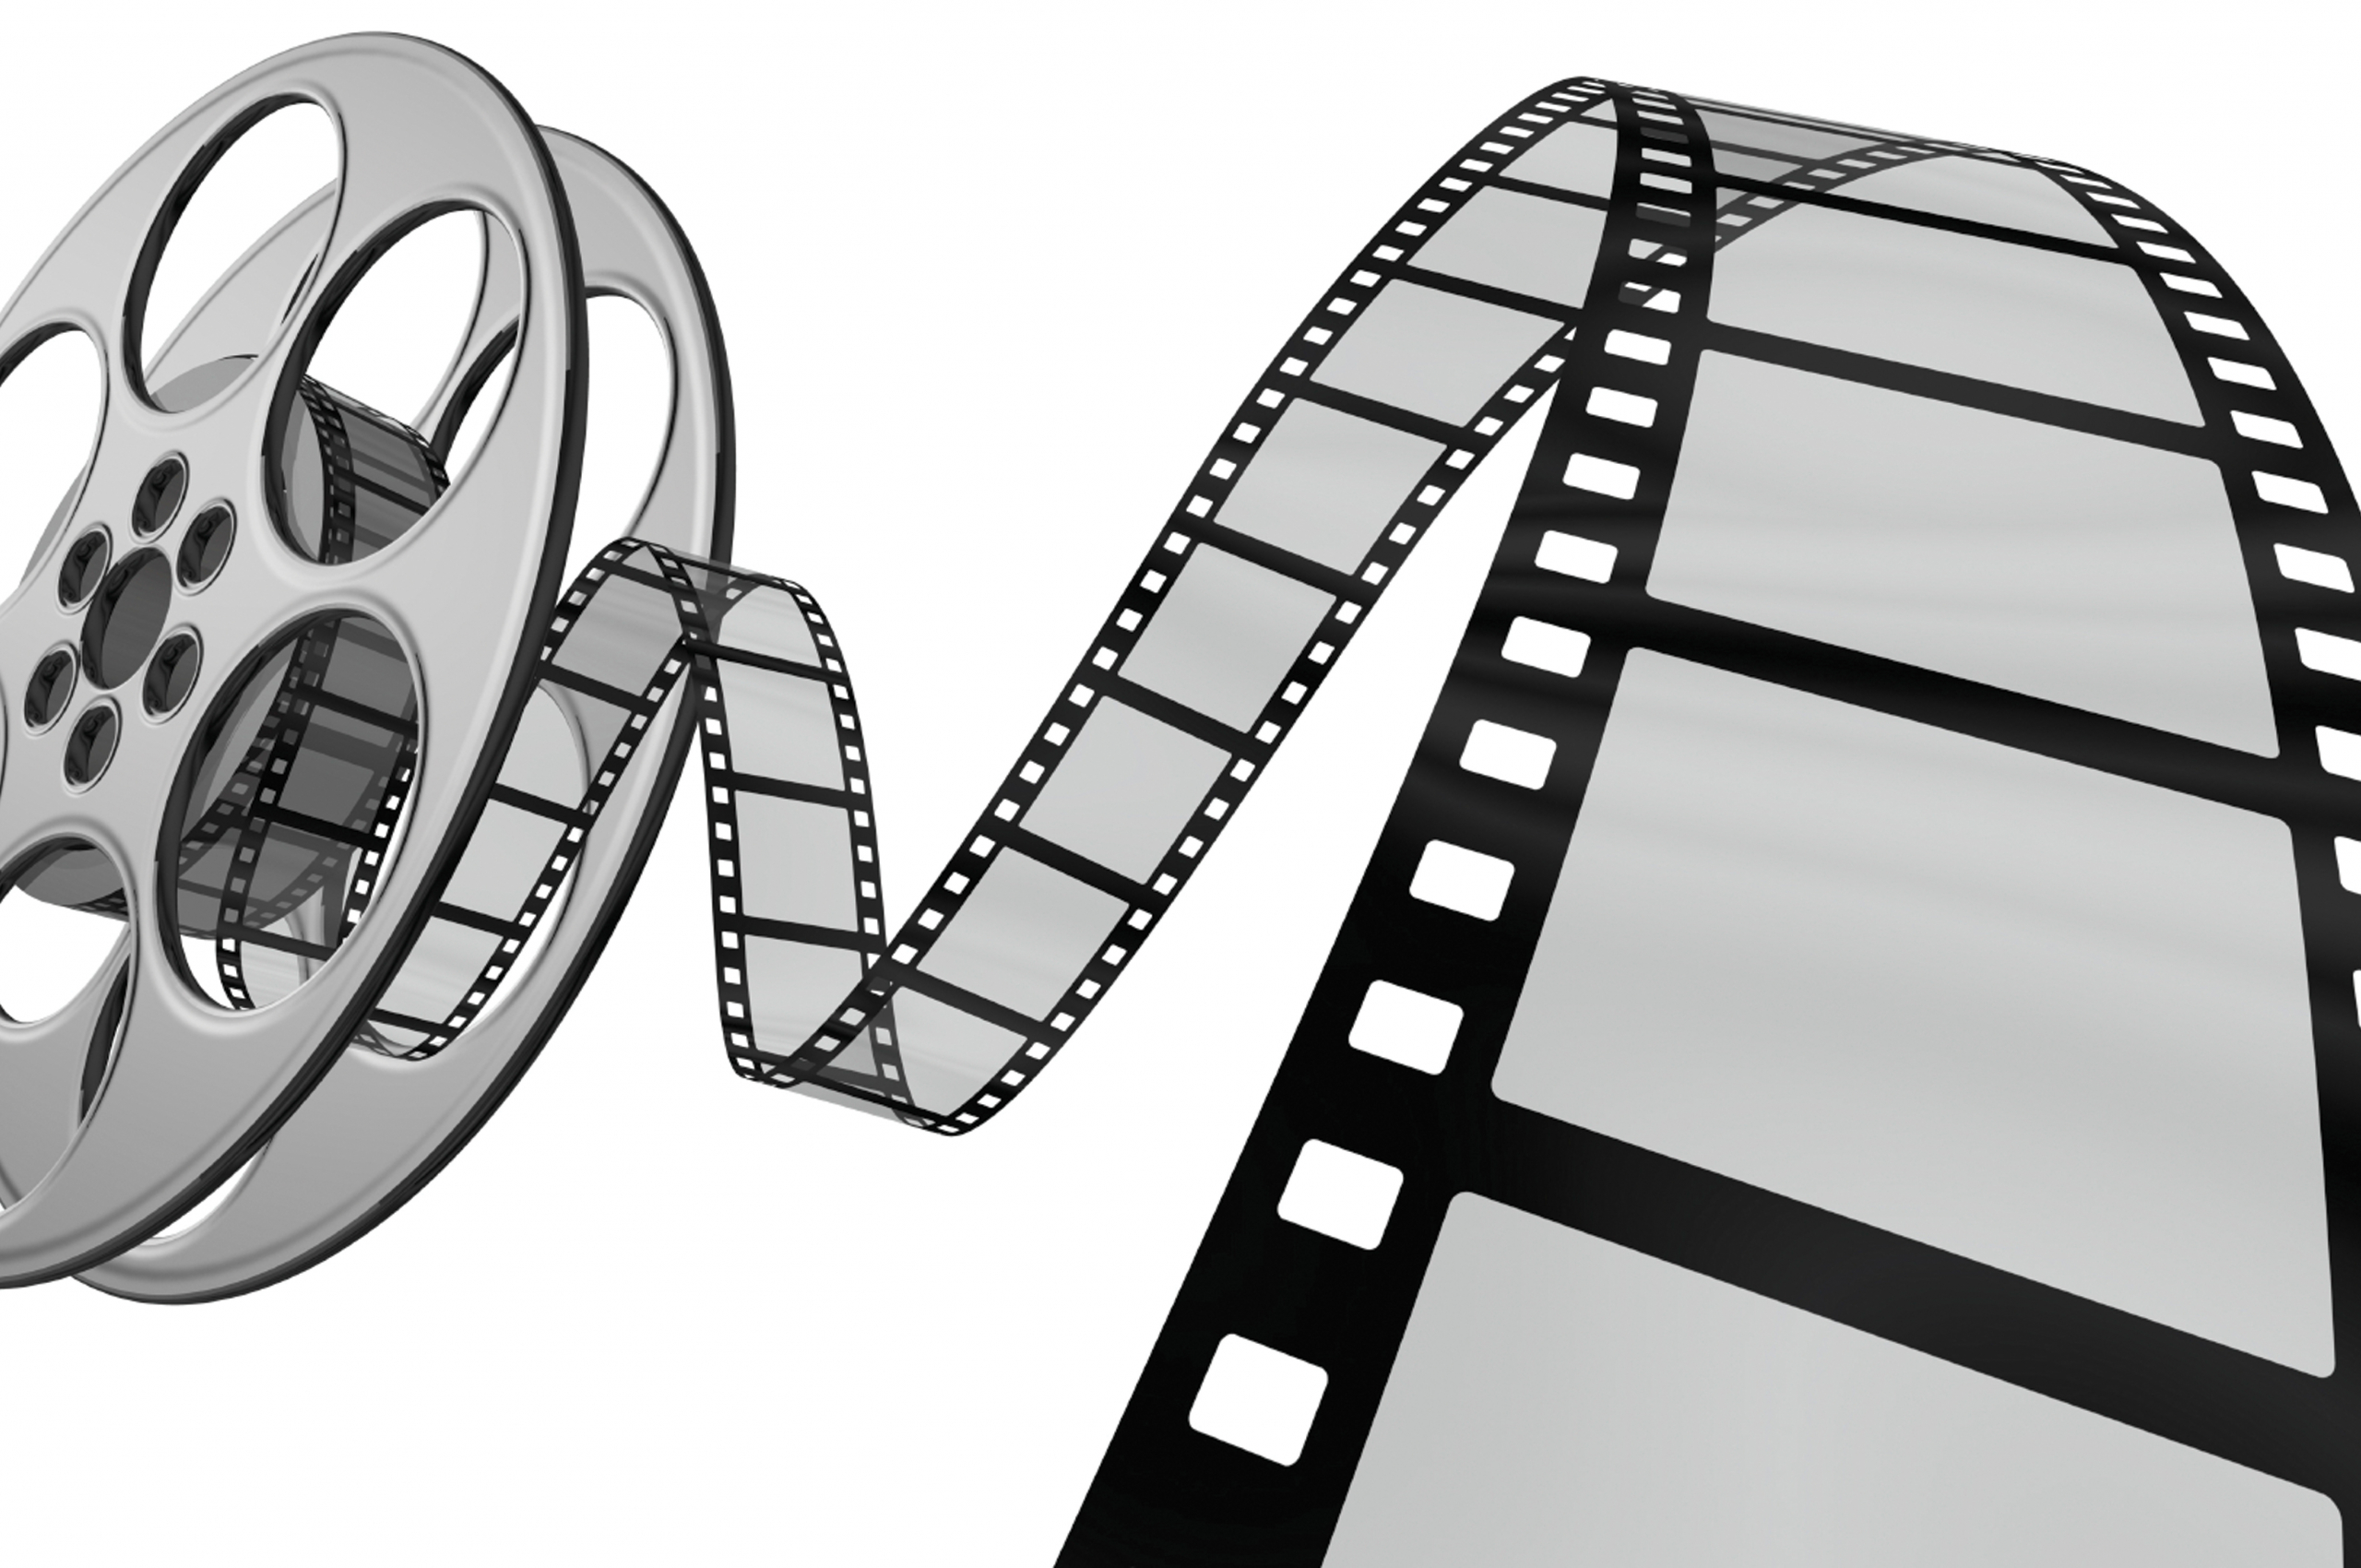 Free Download Old Time Movie Camera Clip Art Movie Reel Gif Clipart Best 5220x2910 For Your Desktop Mobile Tablet Explore 47 Movie Theme Wallpaper Border Film Strip Wallpaper Border